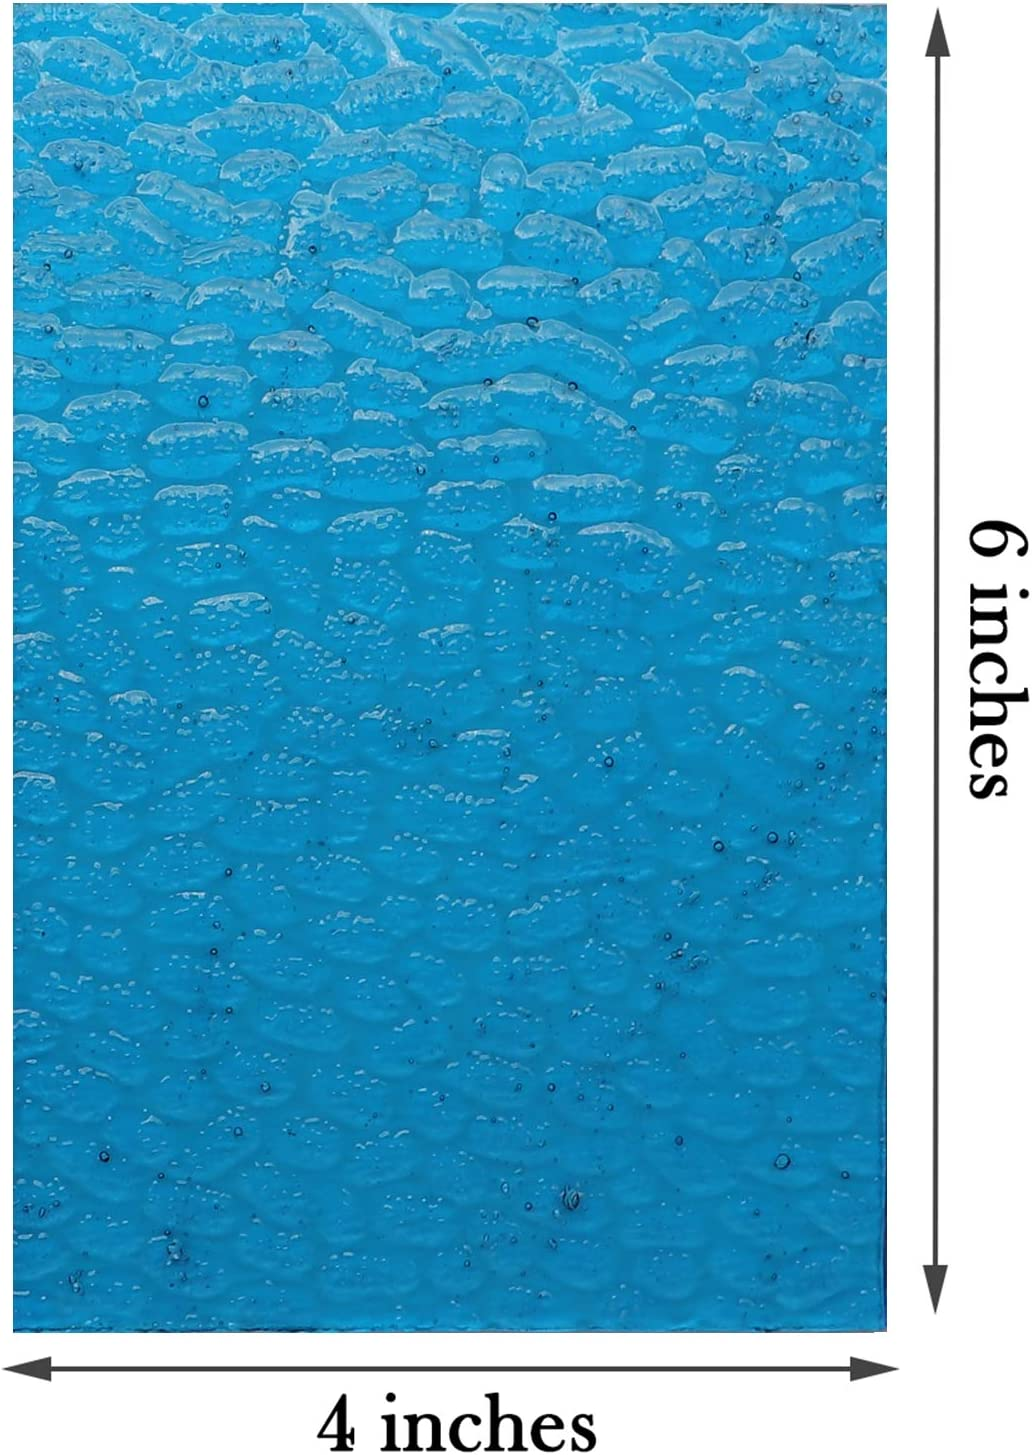 4 x 6 inch Iridescent Glass Sheets for Beginners Mosaic Tiles for Crafts LITMIND 8 Pack Stained Glass Sheets Variety Pack Opaque//Iridescent Art Glass Pack